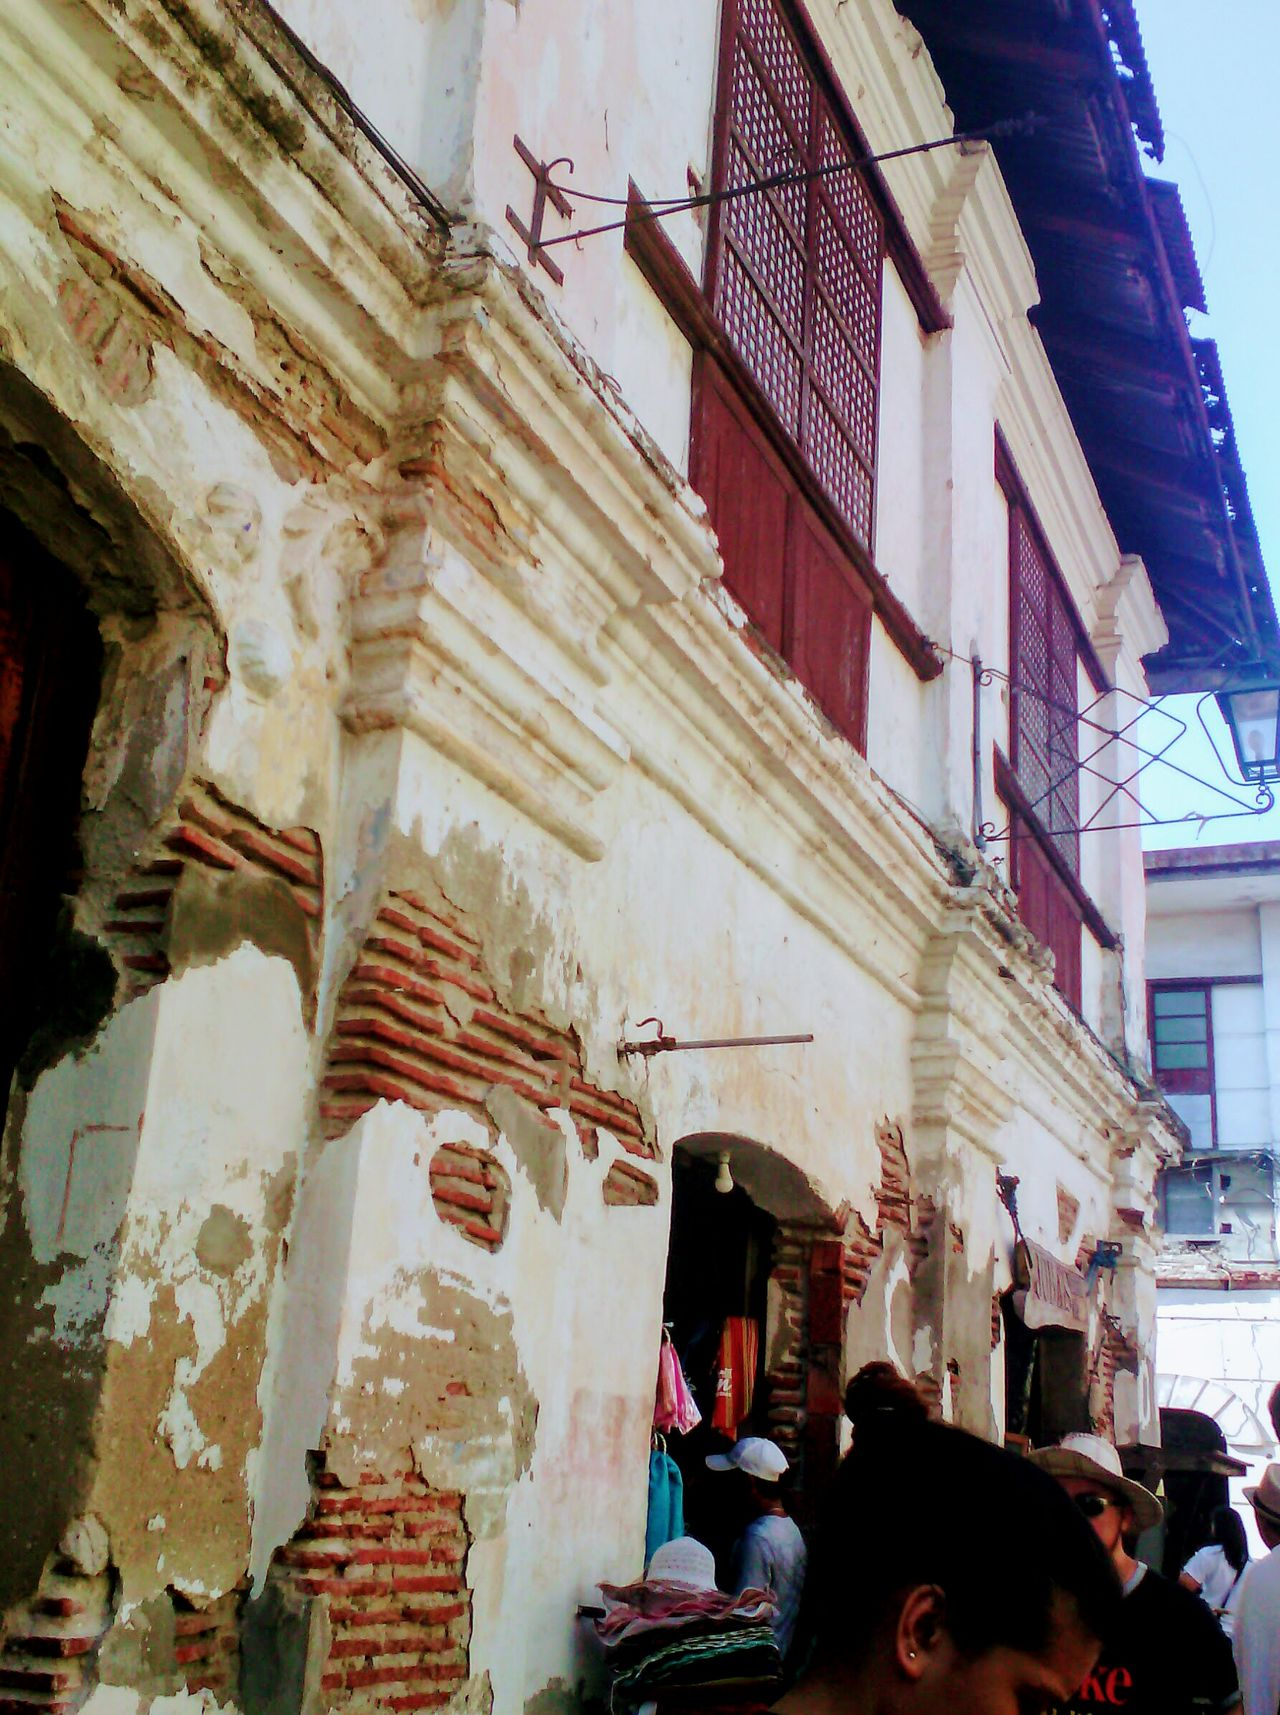 Architecture Built Structure Building Exterior History Low Angle View Day Outdoors Adults Only People Travel Destinations Adult City Real People Sky Vigan Philippines Vintage Shopping Vintage Moments Historical Building Eyemphilippines Outdoor Photography Street Photography Vigan City Philippines Historical Place Architecture Tradingplaces